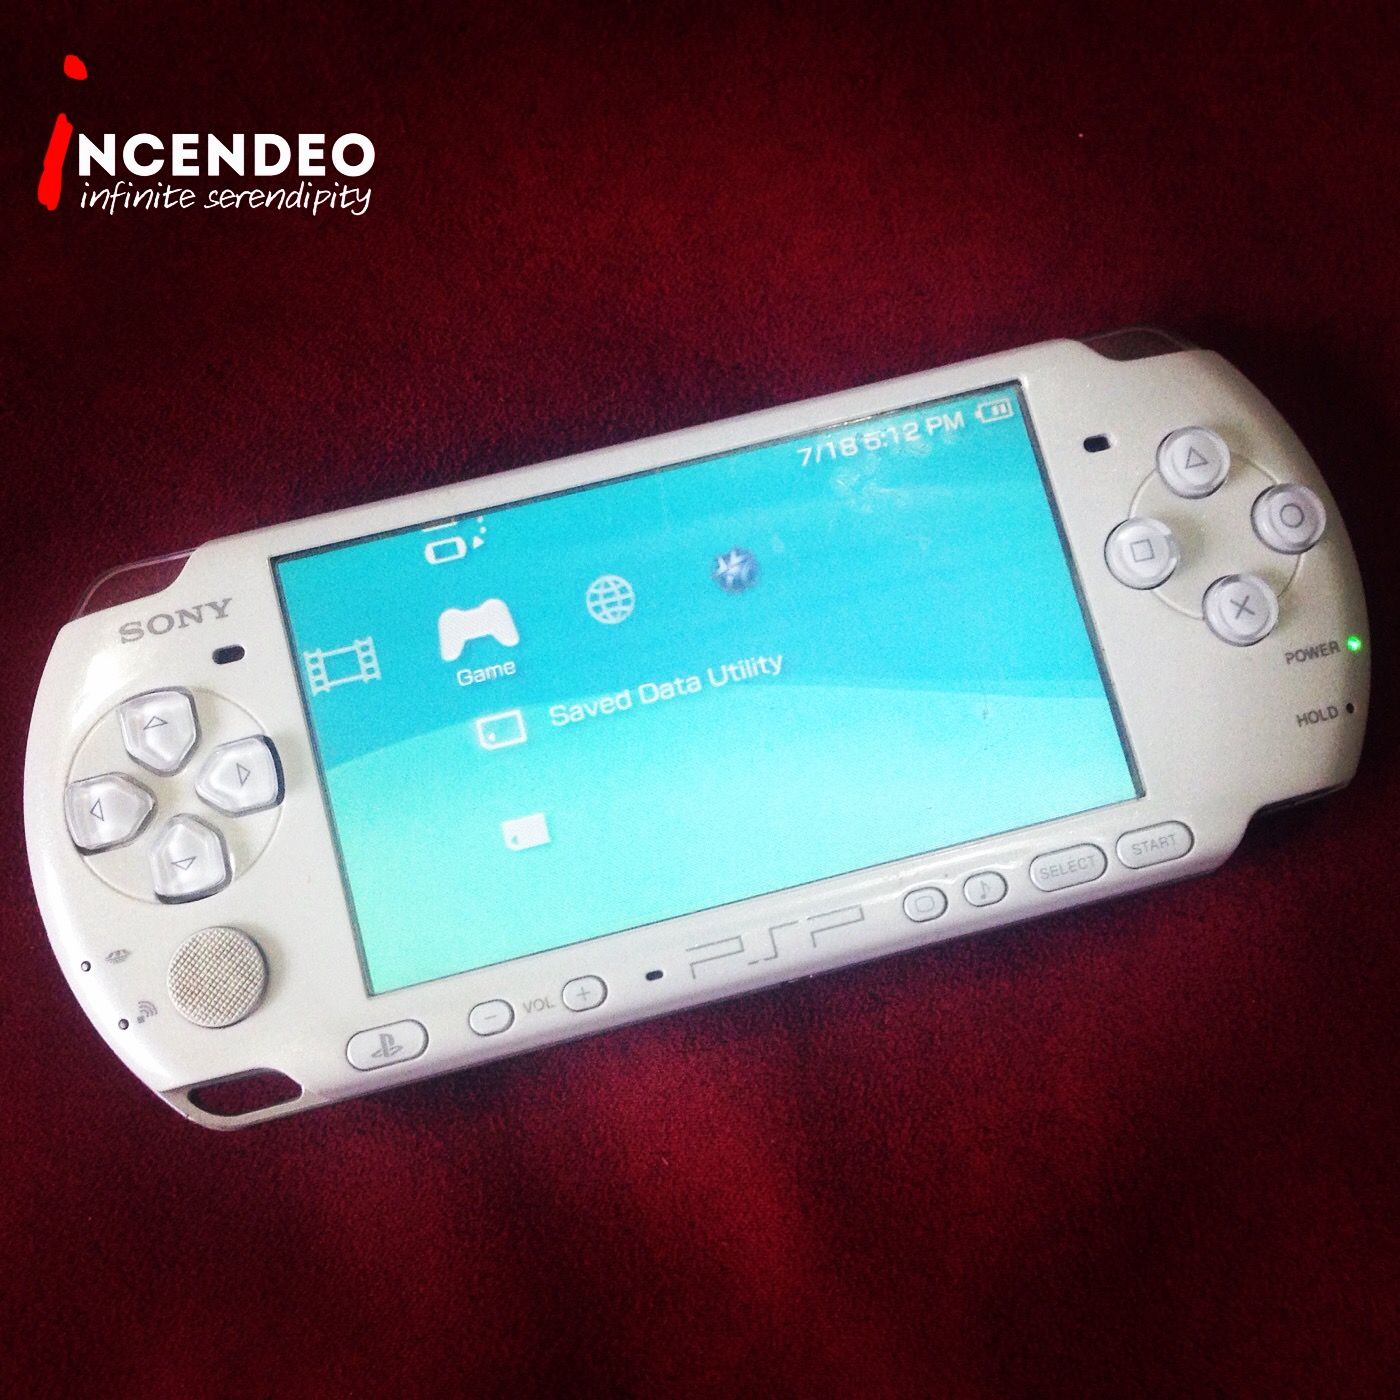 Sony Portable Playstation Game Console Psp 3006 Sony Playstation Portable Psp Game Console Play Musi Xbox One Console Video Games Pc Playstation Games